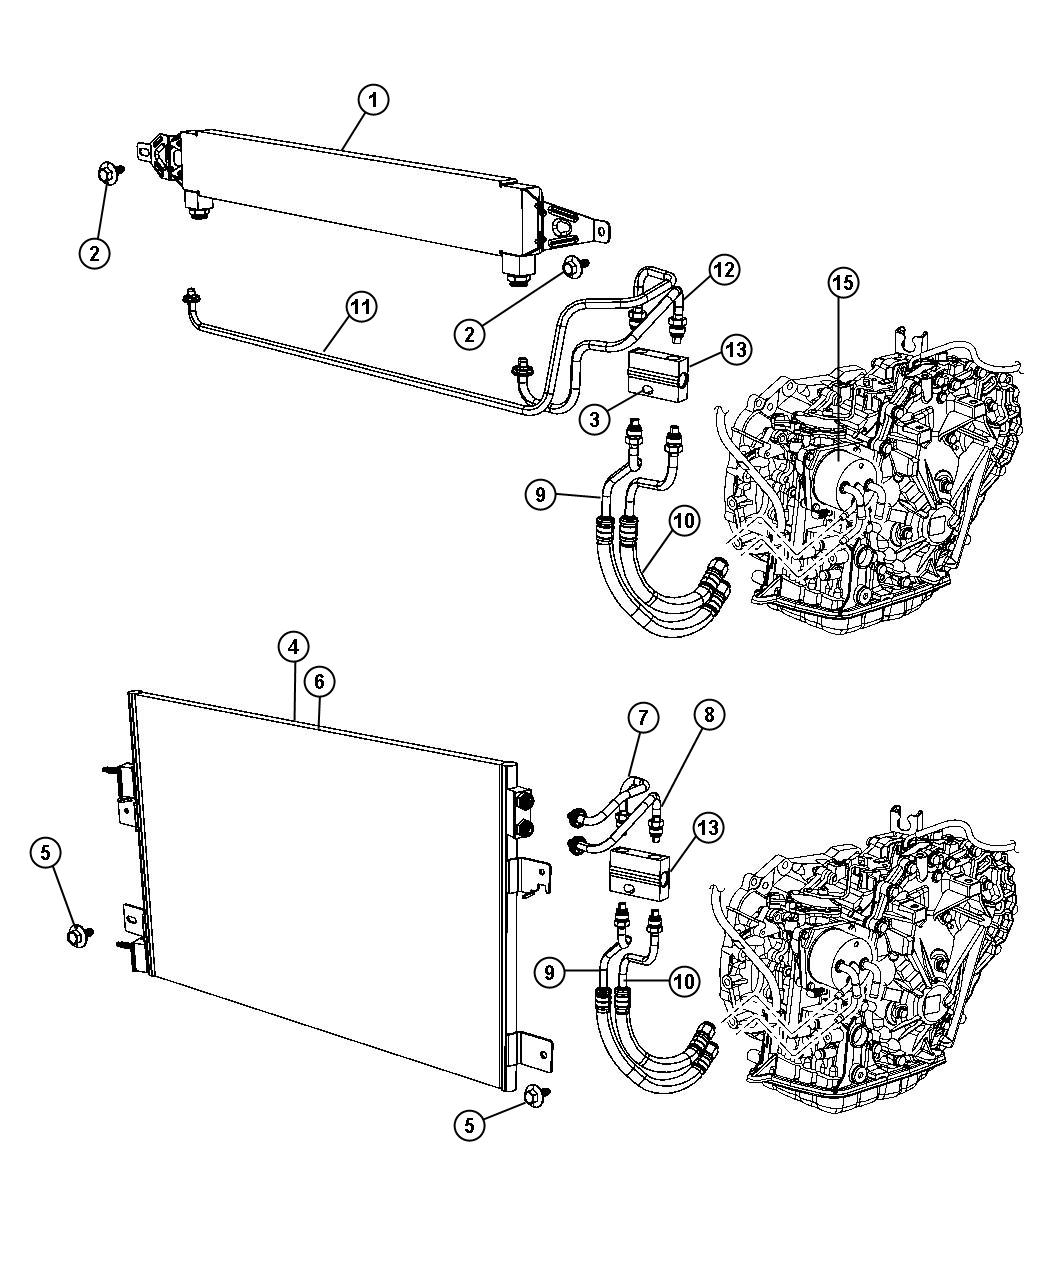 Jeep Compass Lines Oil Cooler